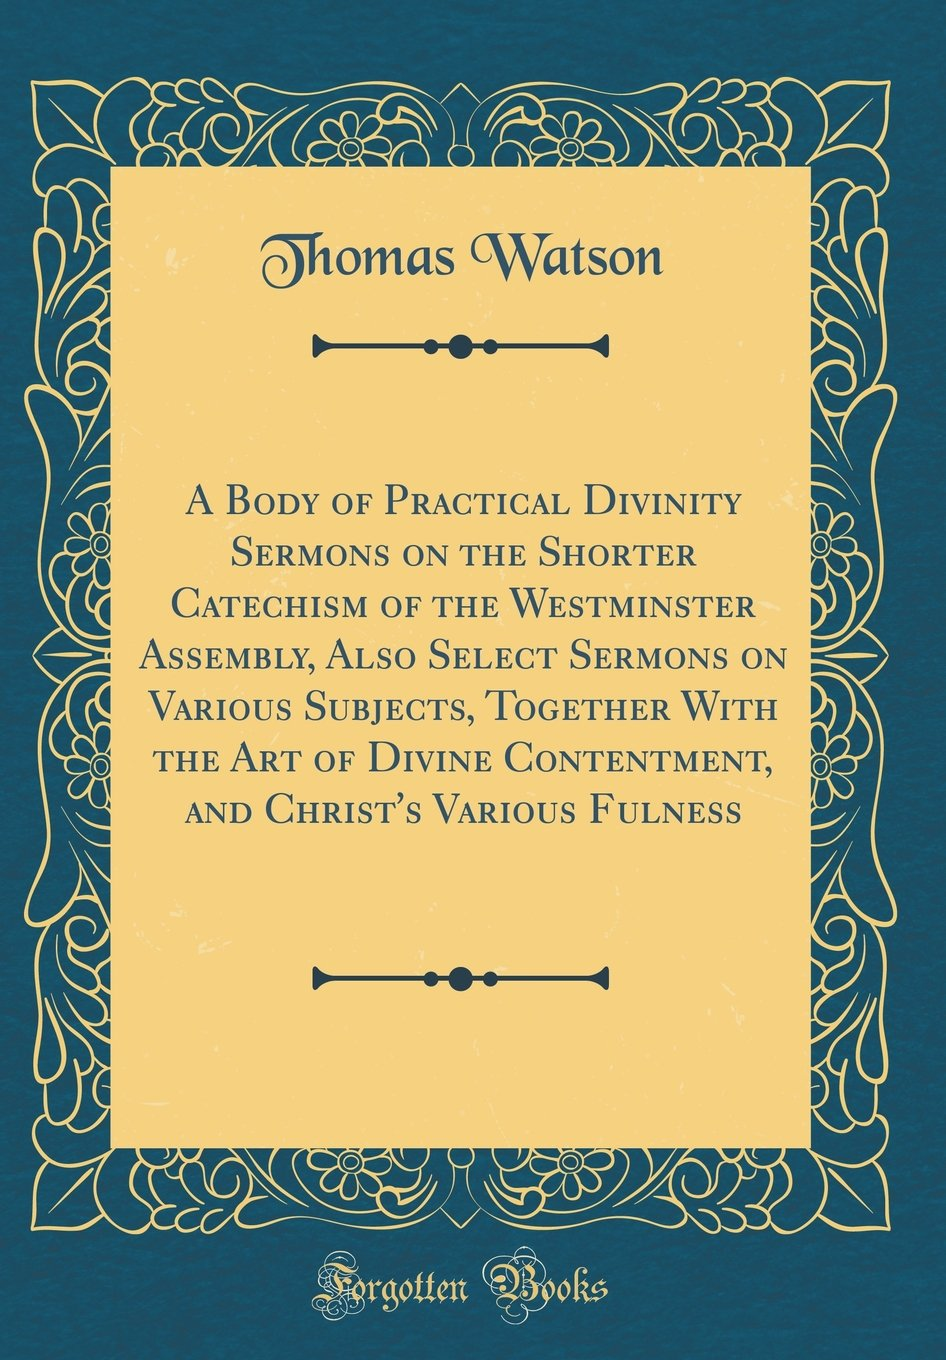 A Body of Practical Divinity Sermons on the Shorter Catechism of the Westminster Assembly, Also Select Sermons on Various Subjects, Together With the ... Christ's Various Fulness (Classic Reprint) PDF